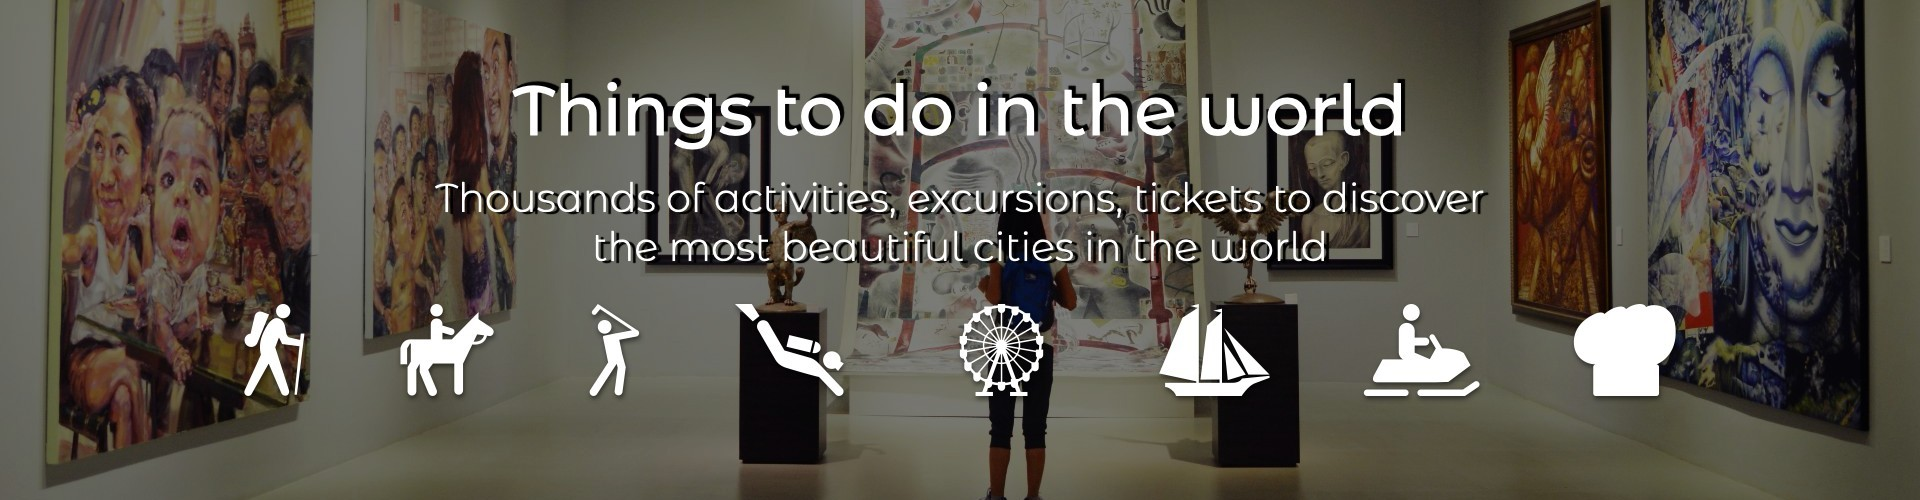 Things to do in the world